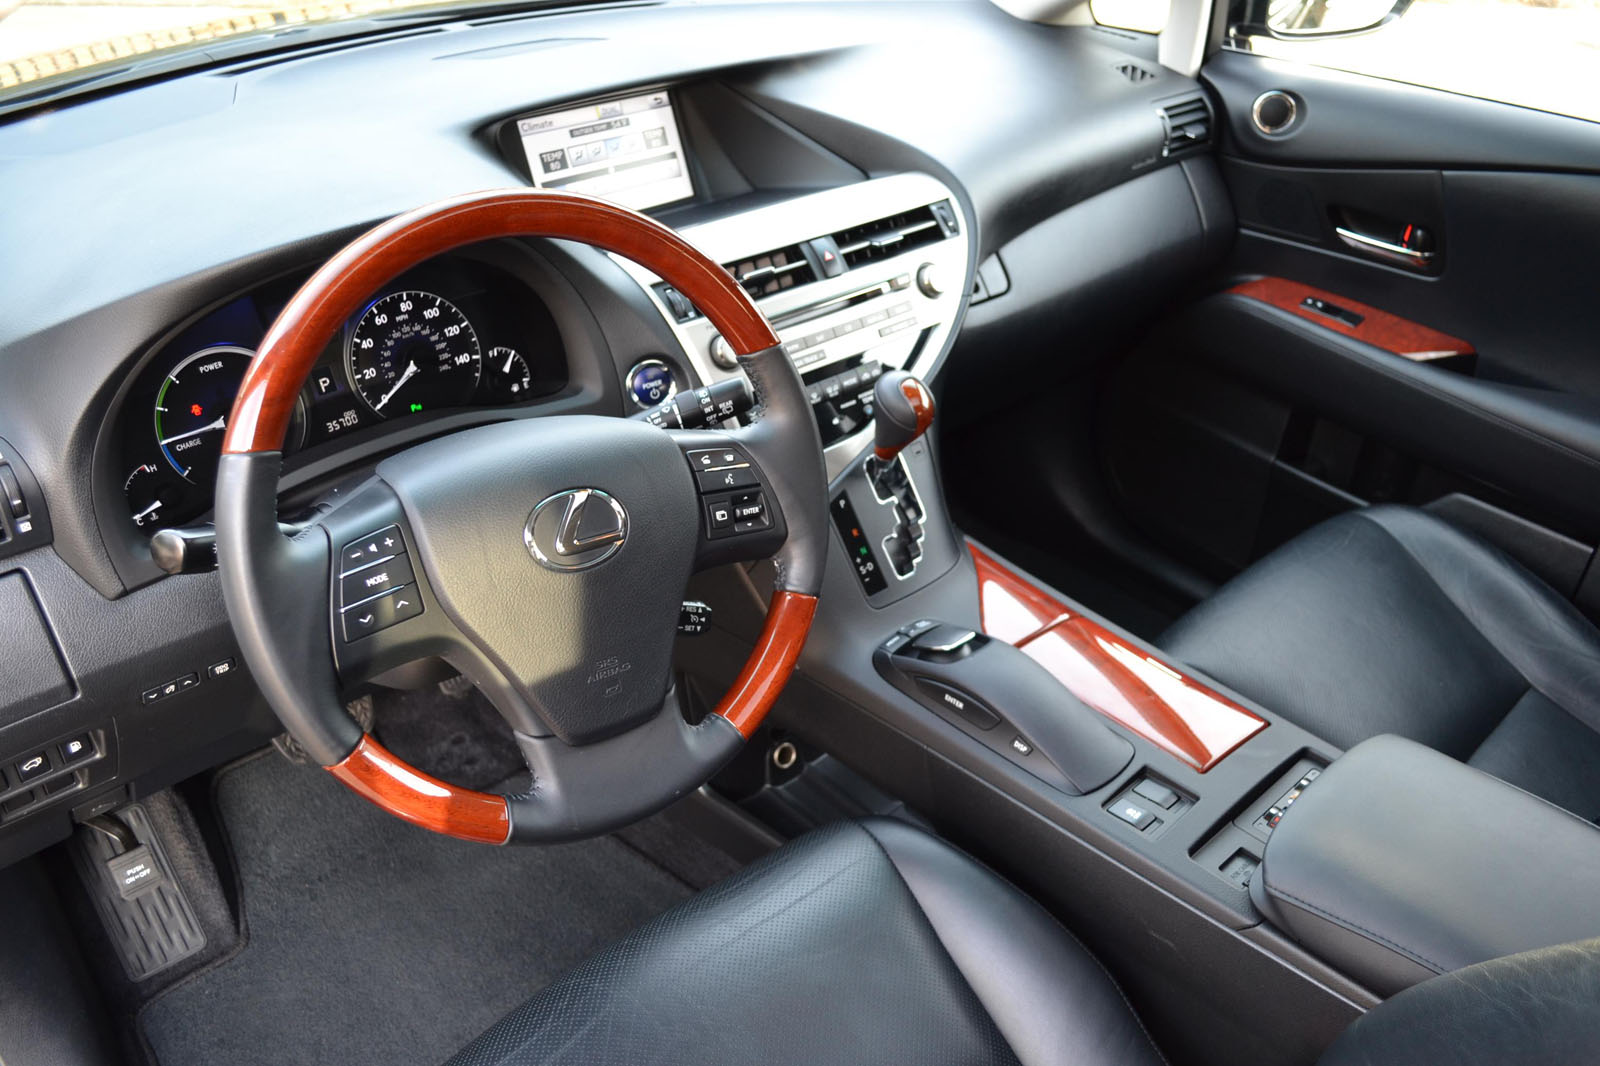 Make lexus model rx450h trim hybrid body type suv exterior color black interior color black leather engine 3 5l v 6 hybrid